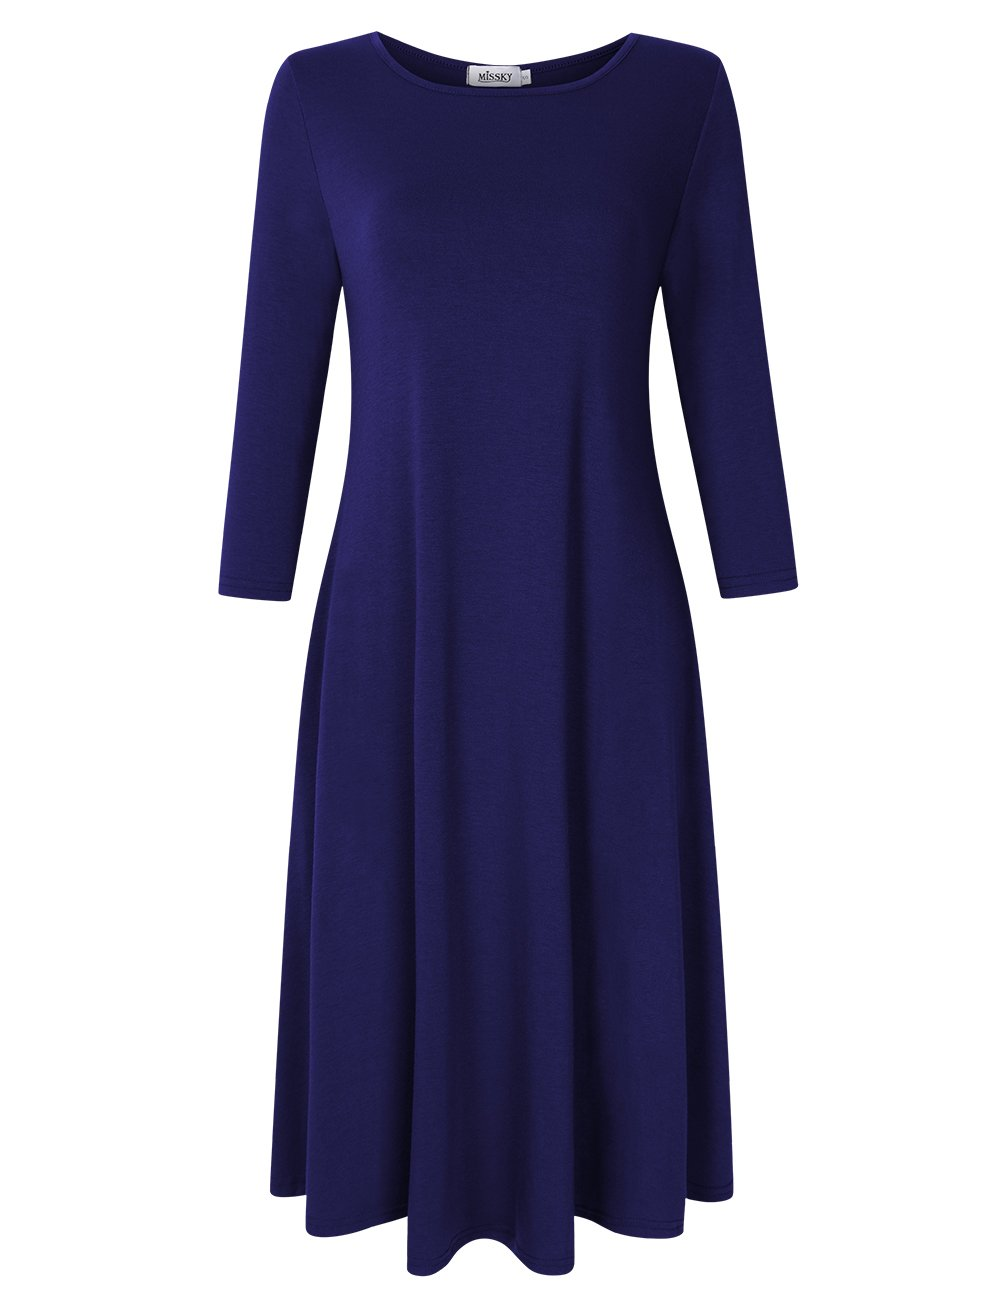 MISSKY Women's Midi Long Sleeve Dress Scoop Neck Loose Swing Casual Dresses For Women With Pockets Royal Blue XL